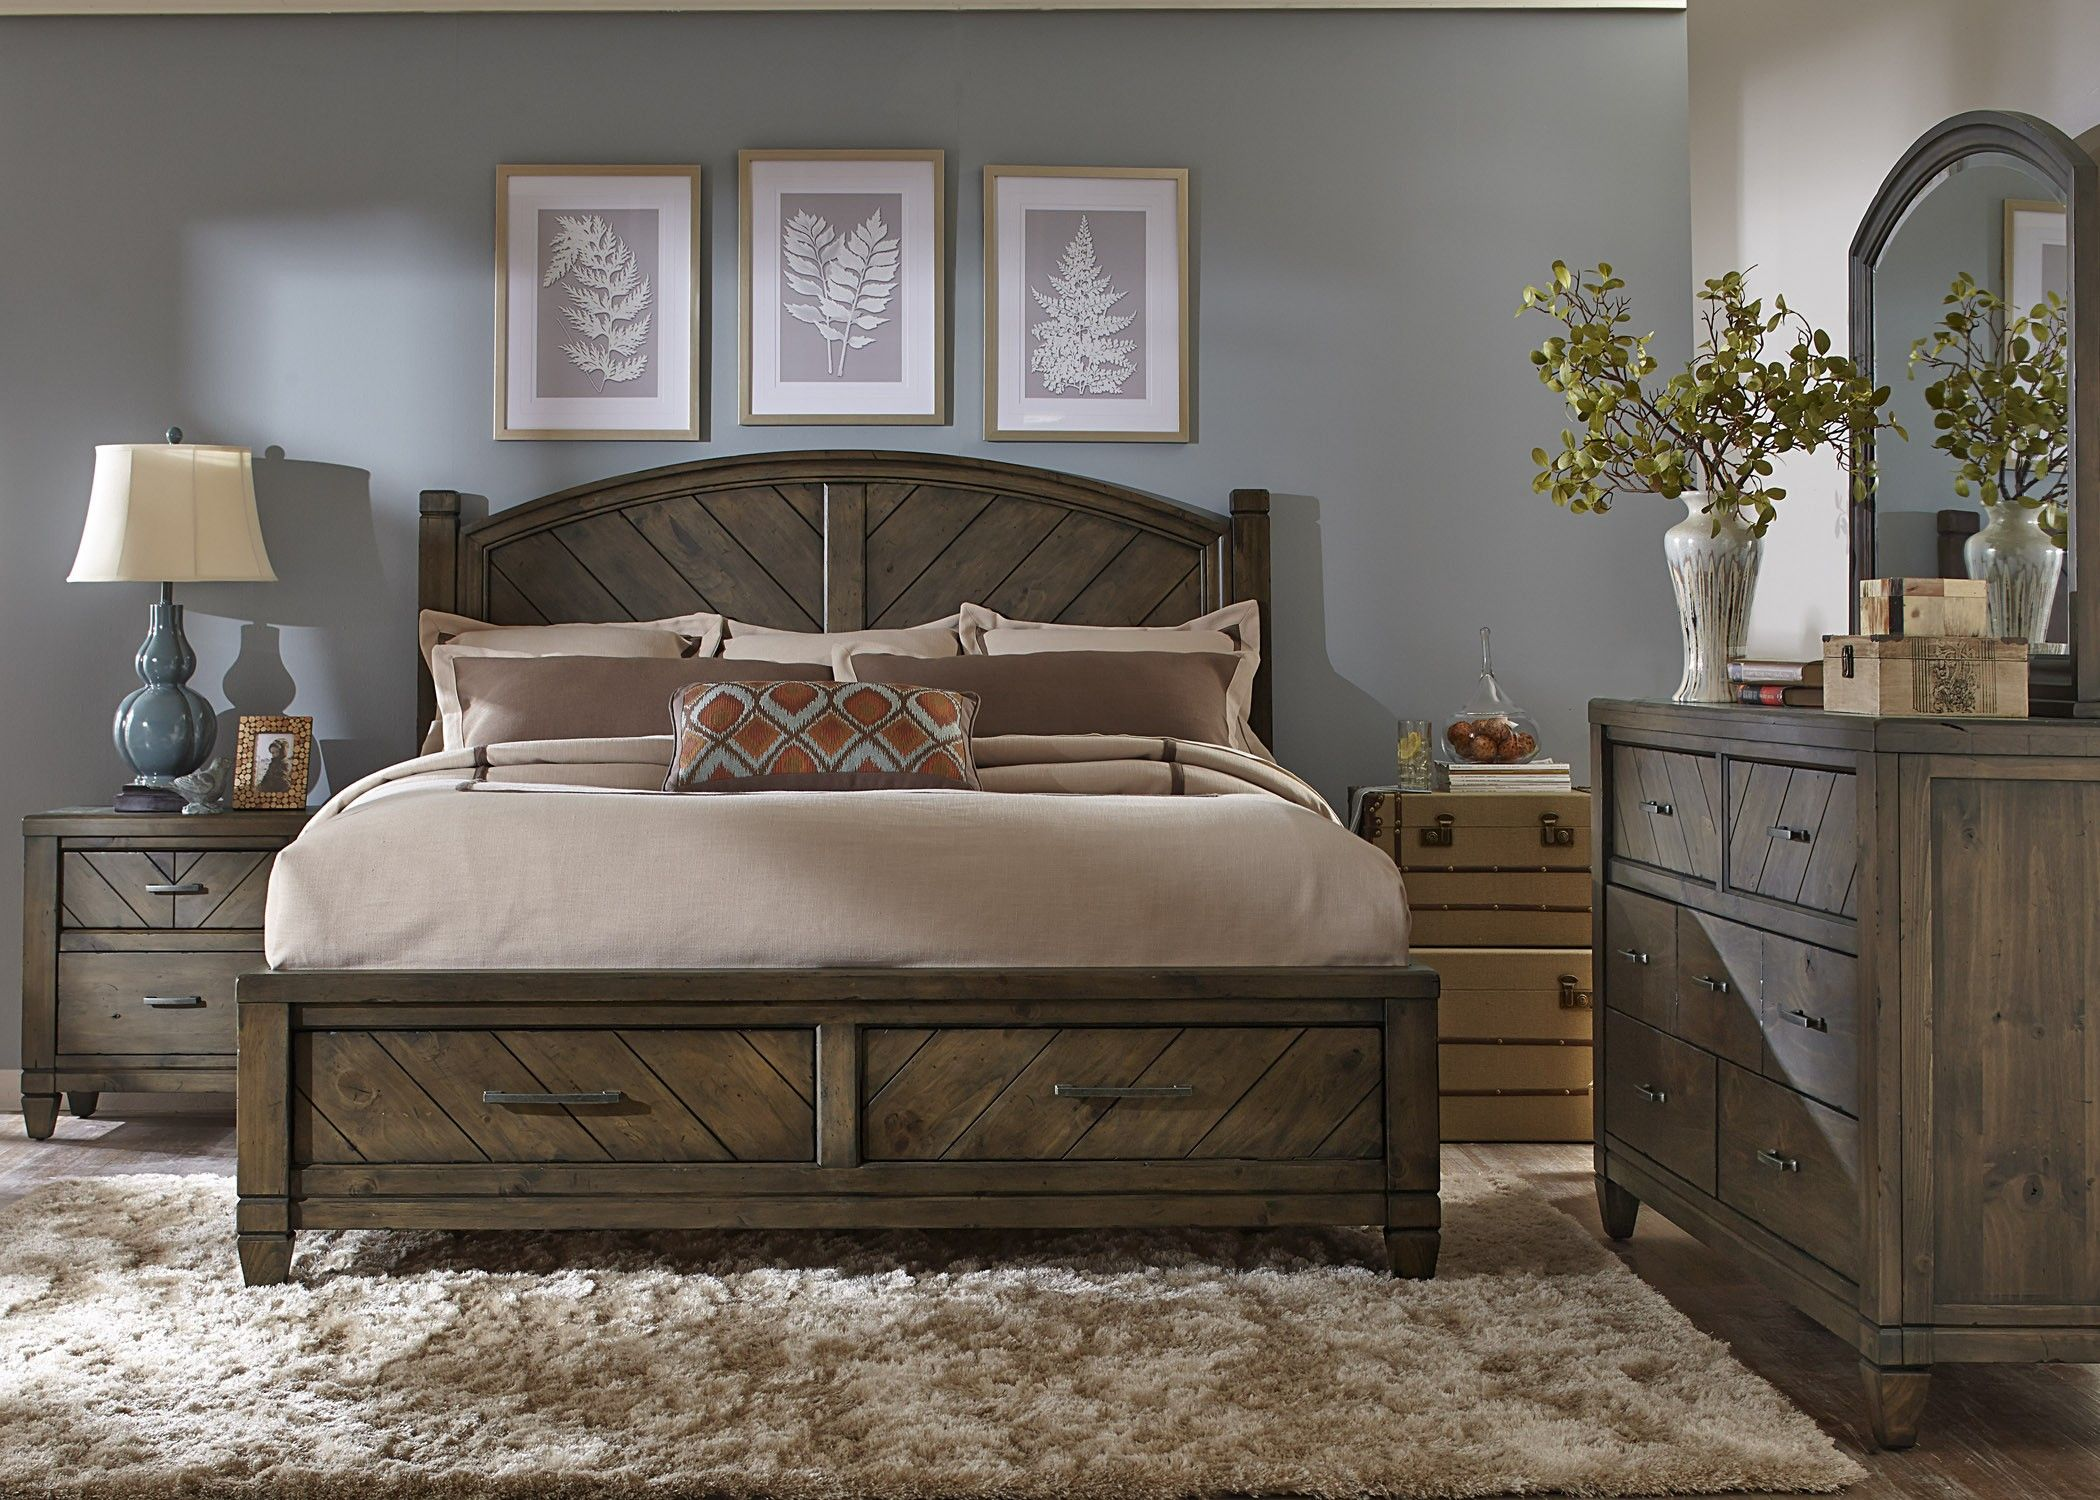 Modern Country Bedroom Set   Modern country bedrooms ...